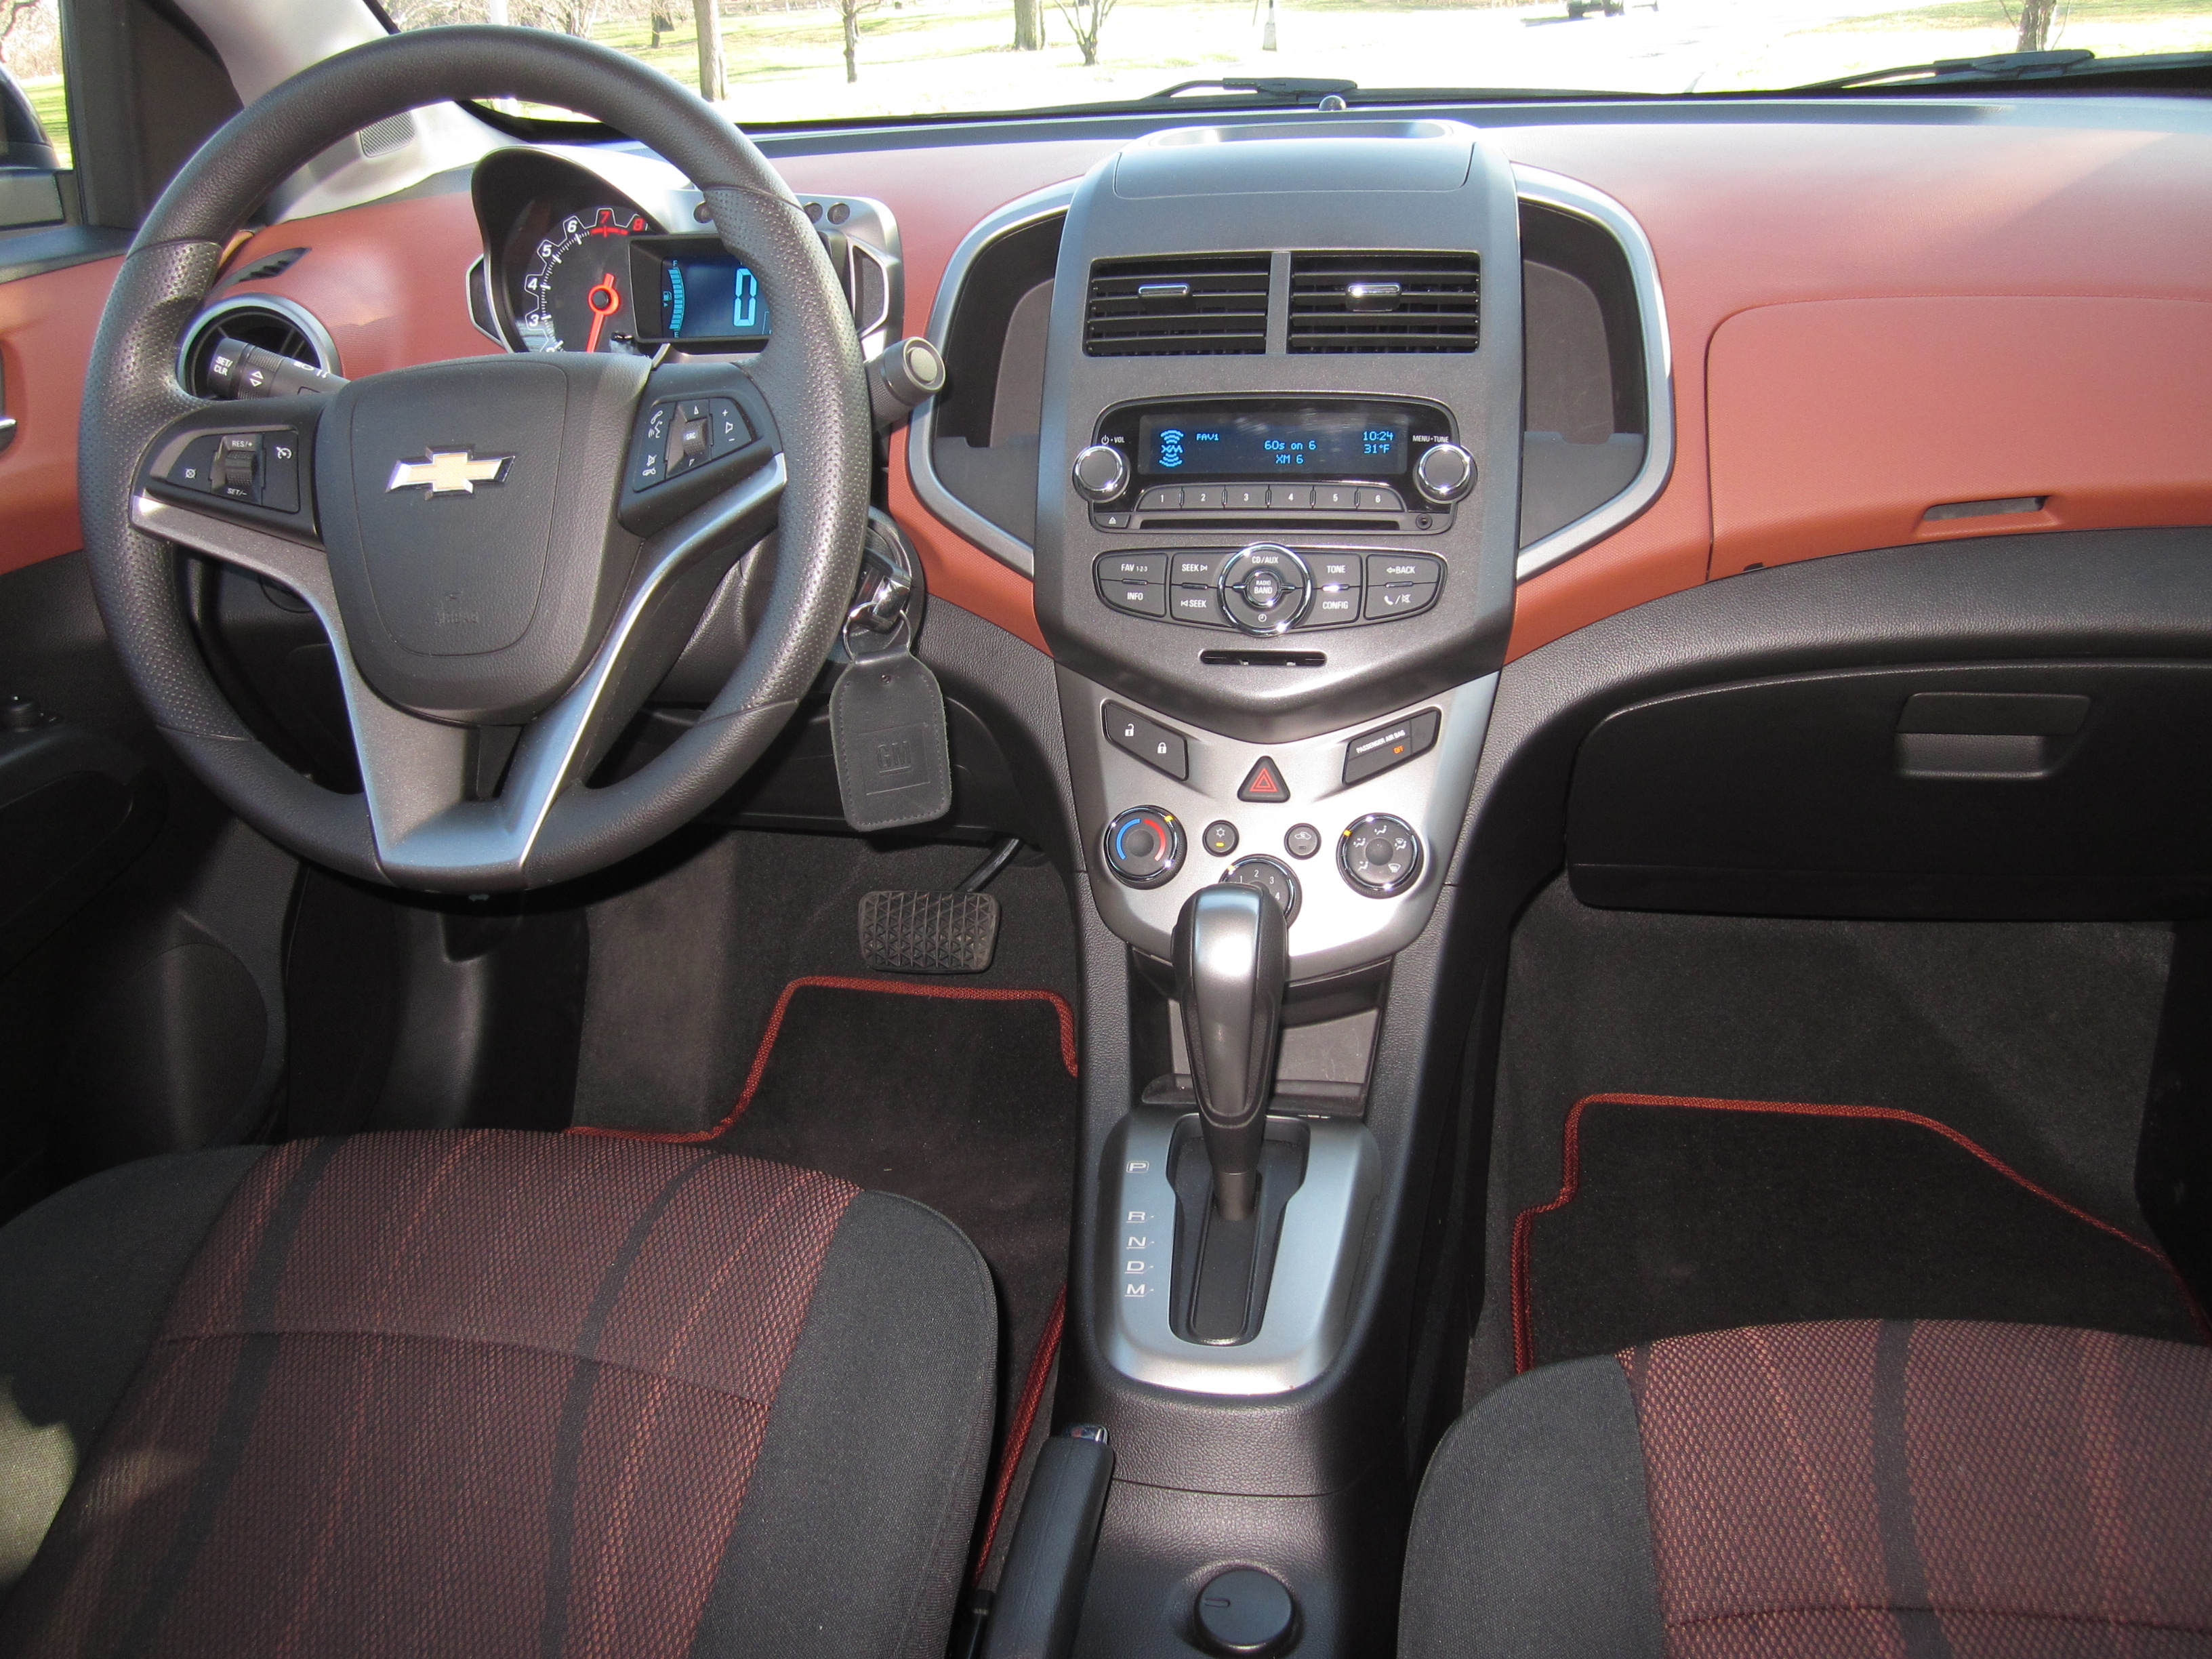 2012 Chevrolet Sonic LT Sedan (select To View Enlarged Photo)